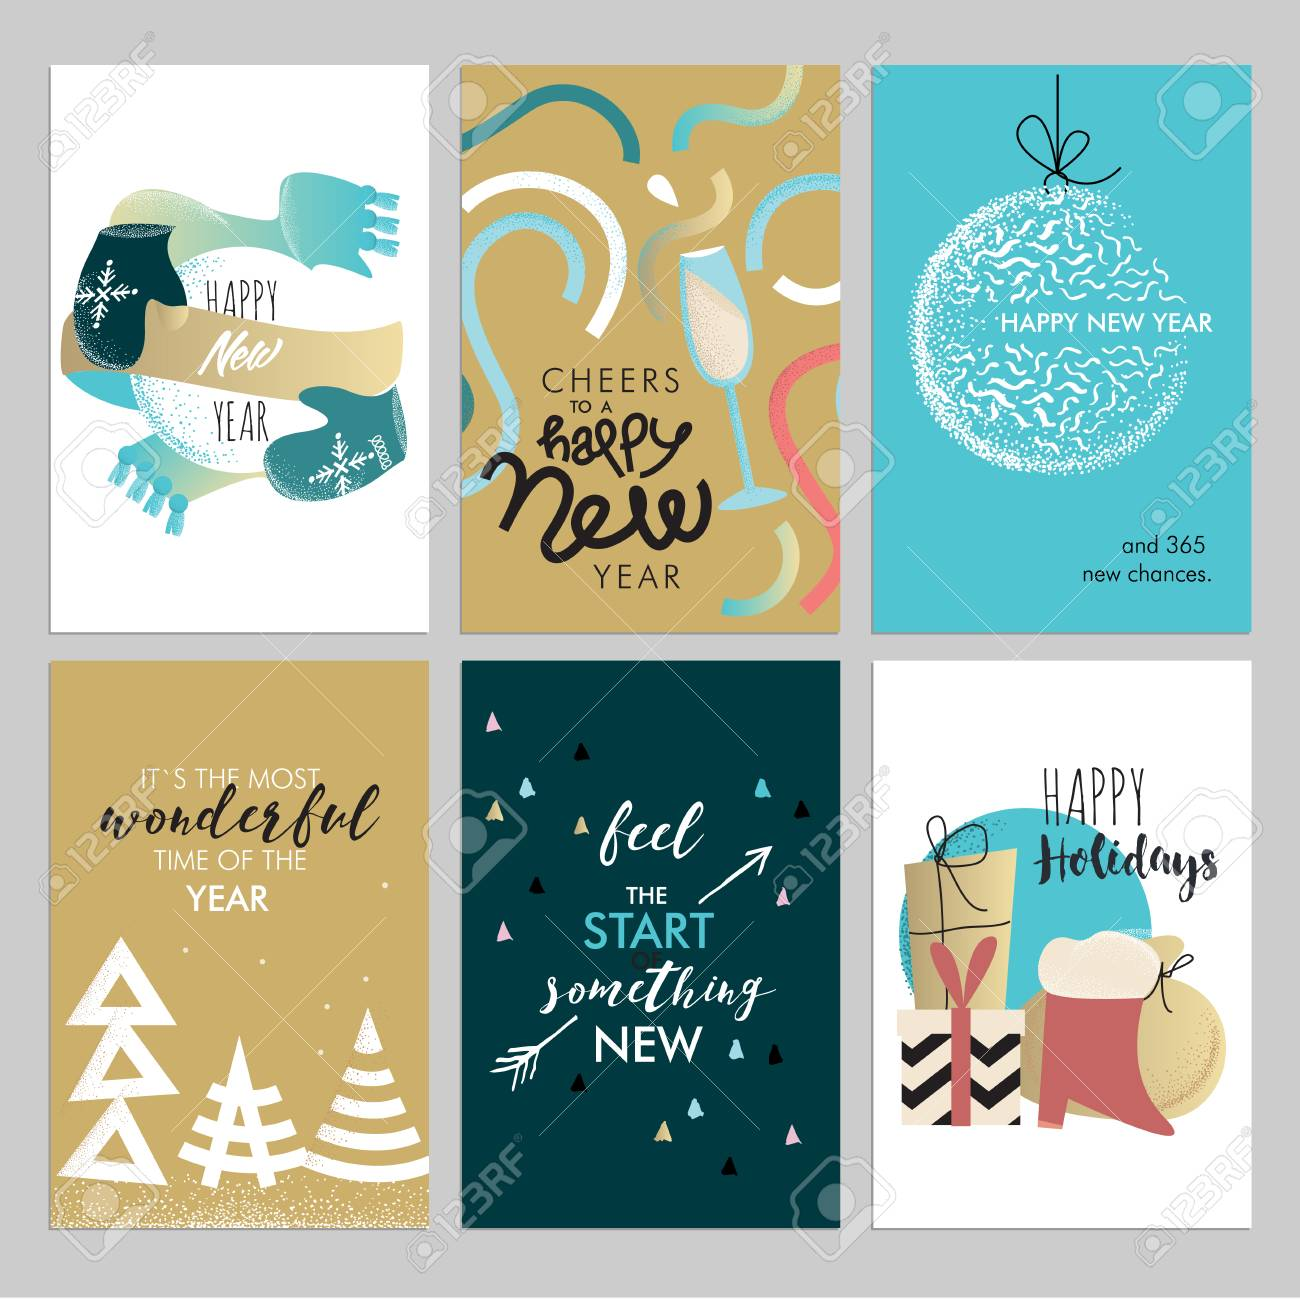 Christmas and new year vintage greeting cards set hand drawn christmas and new year vintage greeting cards set hand drawn vector illustrations for greeting cards m4hsunfo